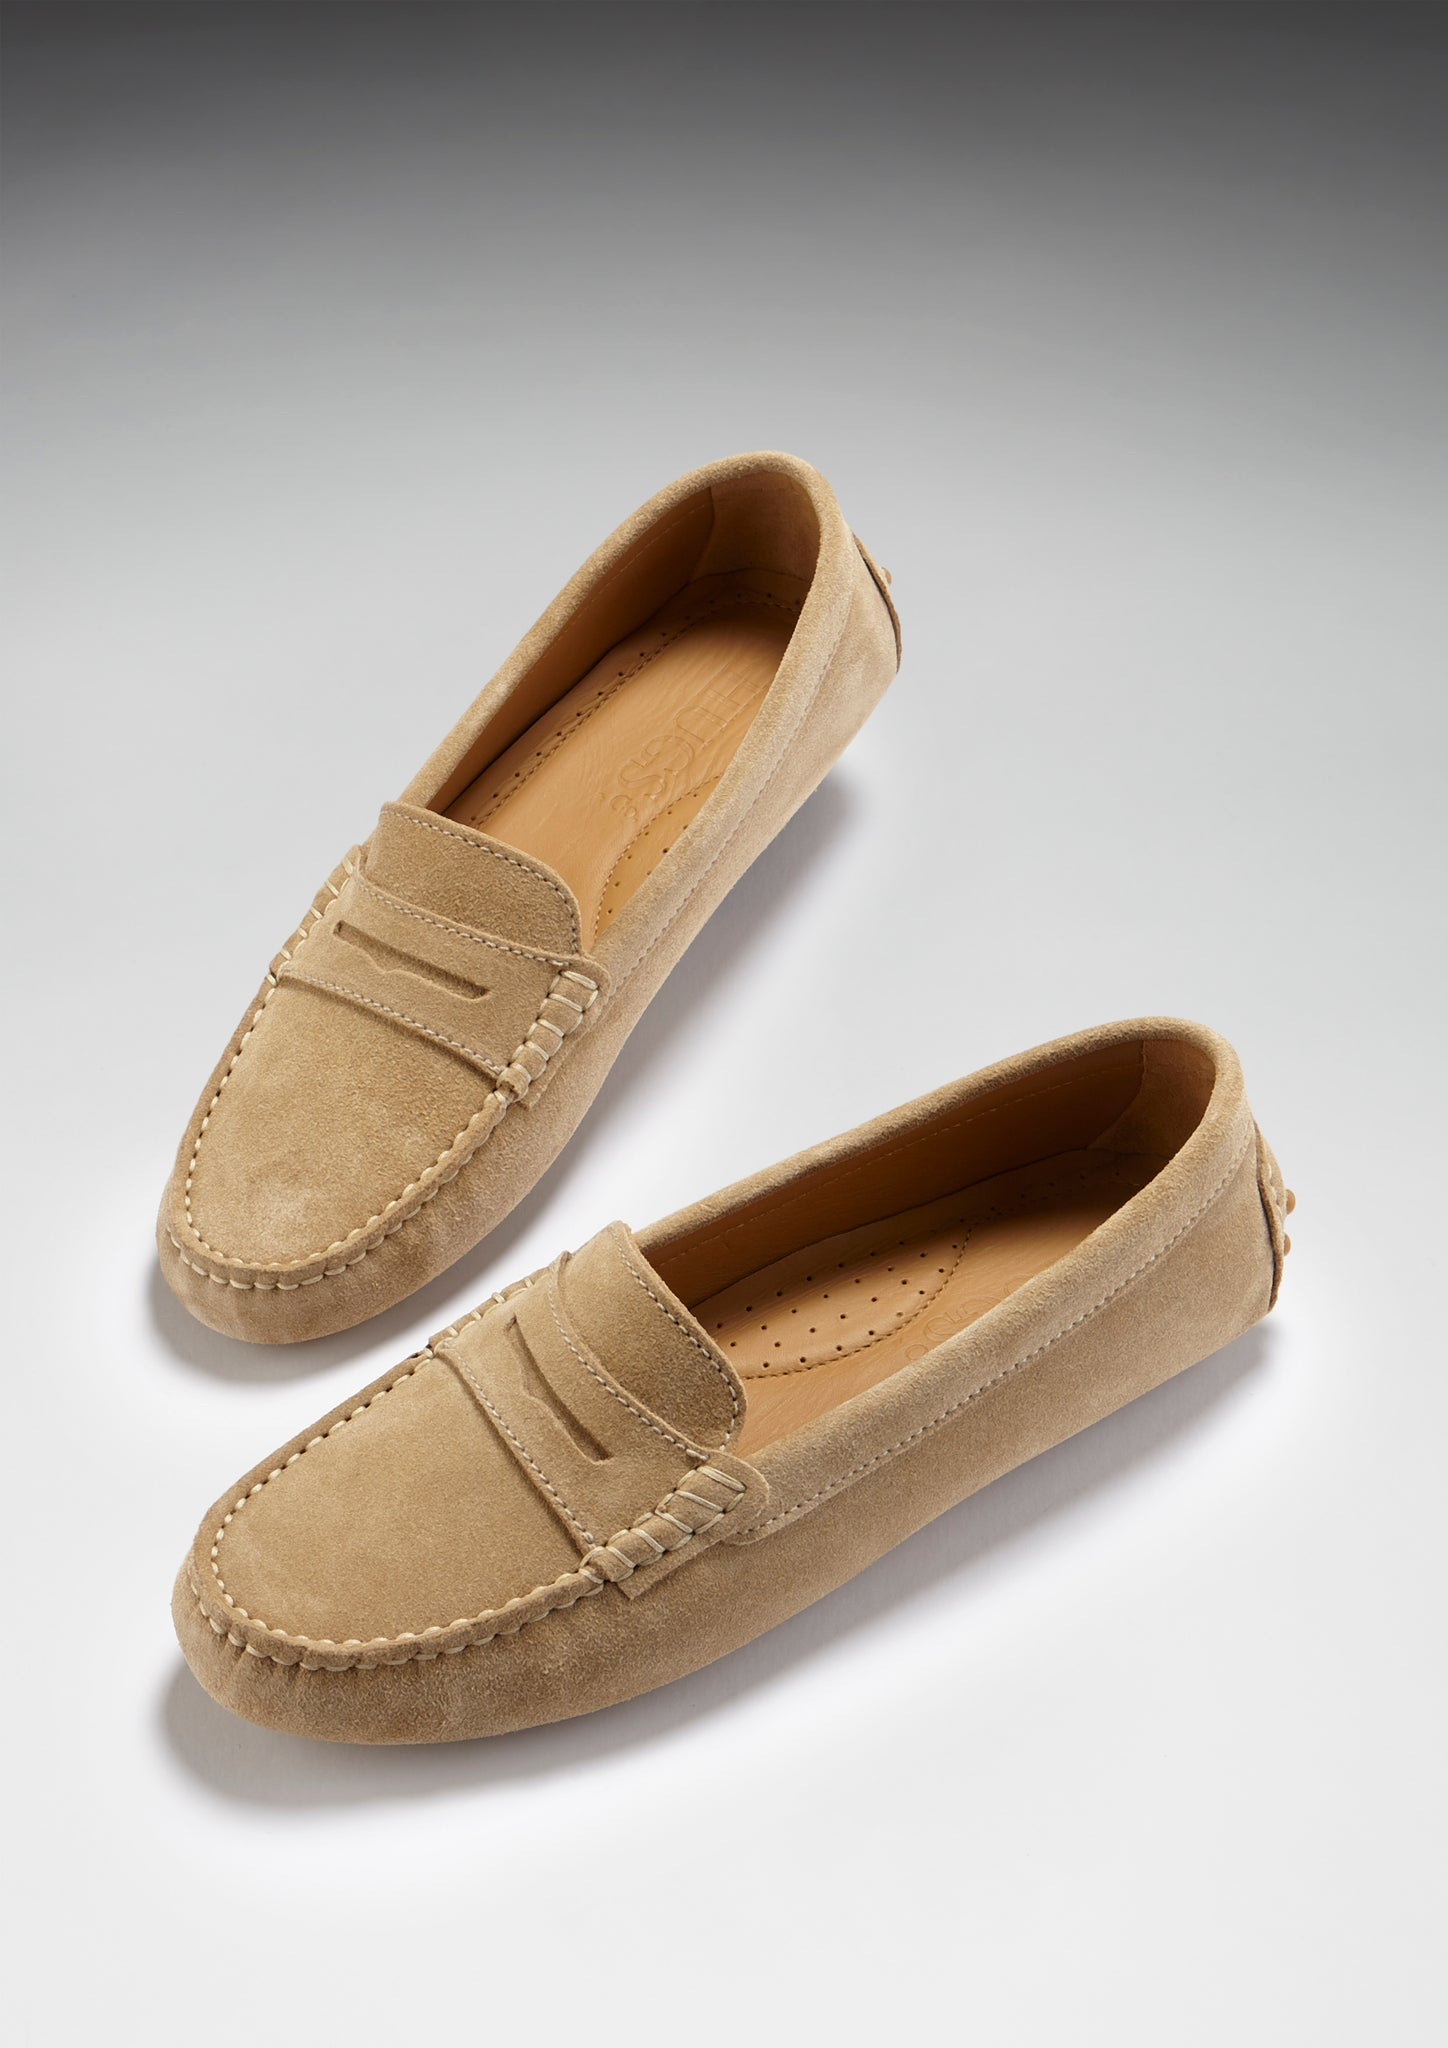 Hugs & Co. ladies penny loafer